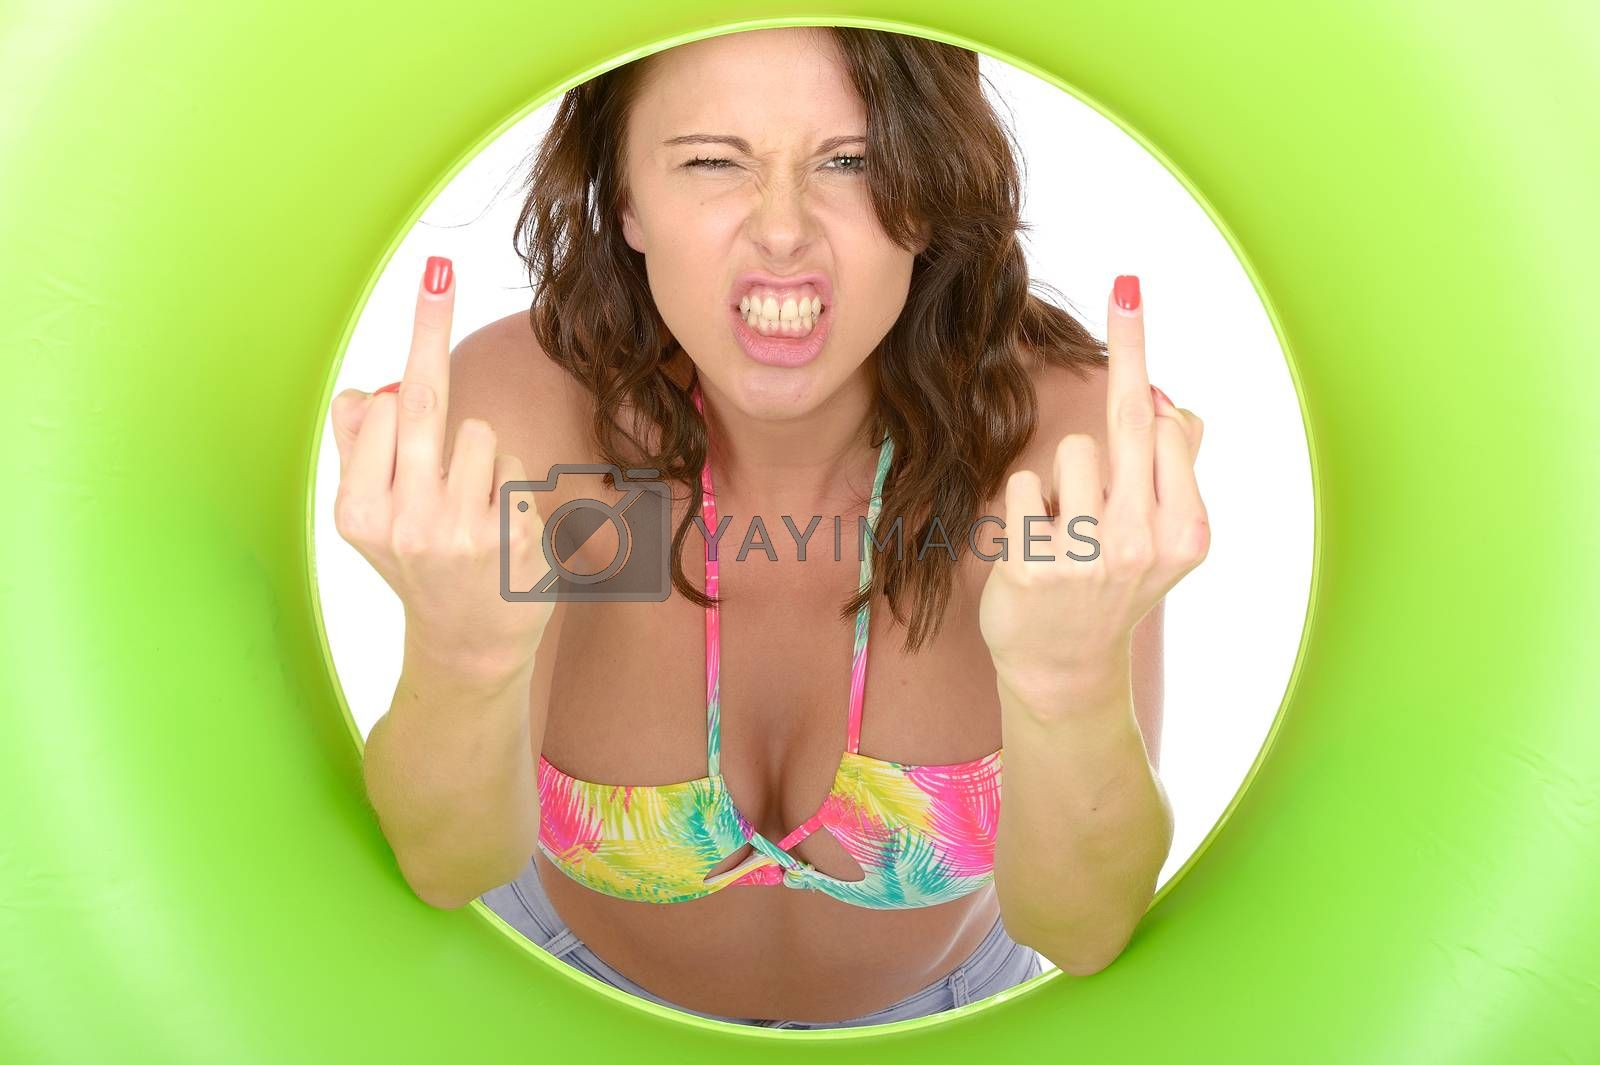 Attractive Young Woman Looking Through a Green Rubber Ring Giving Middle Finger on Both Hands